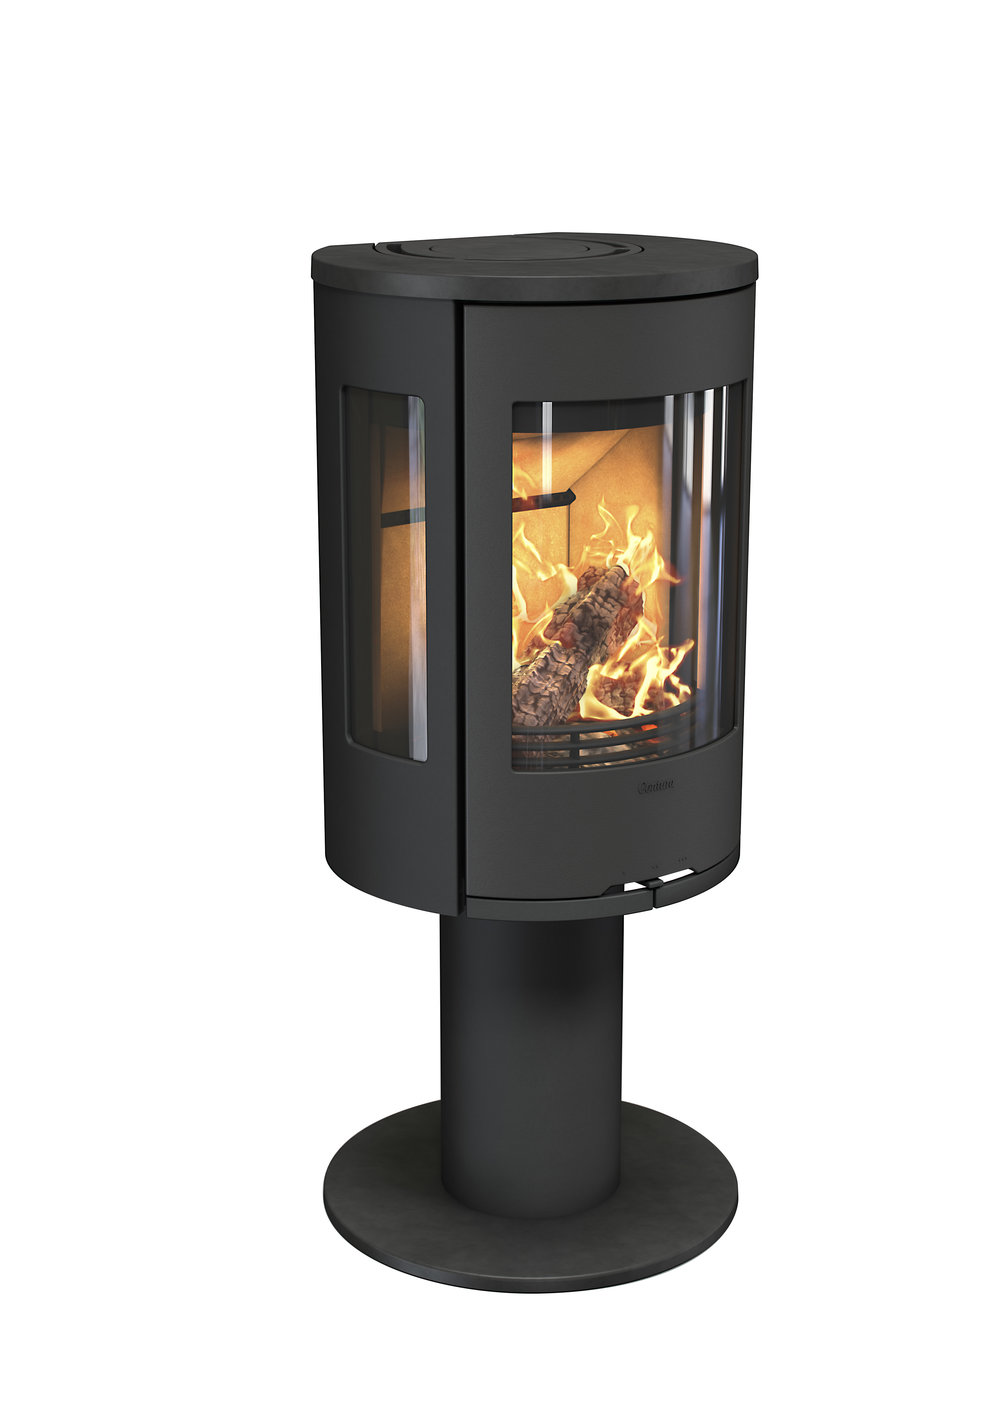 3. Contura wood burning stove _586_black.jpg